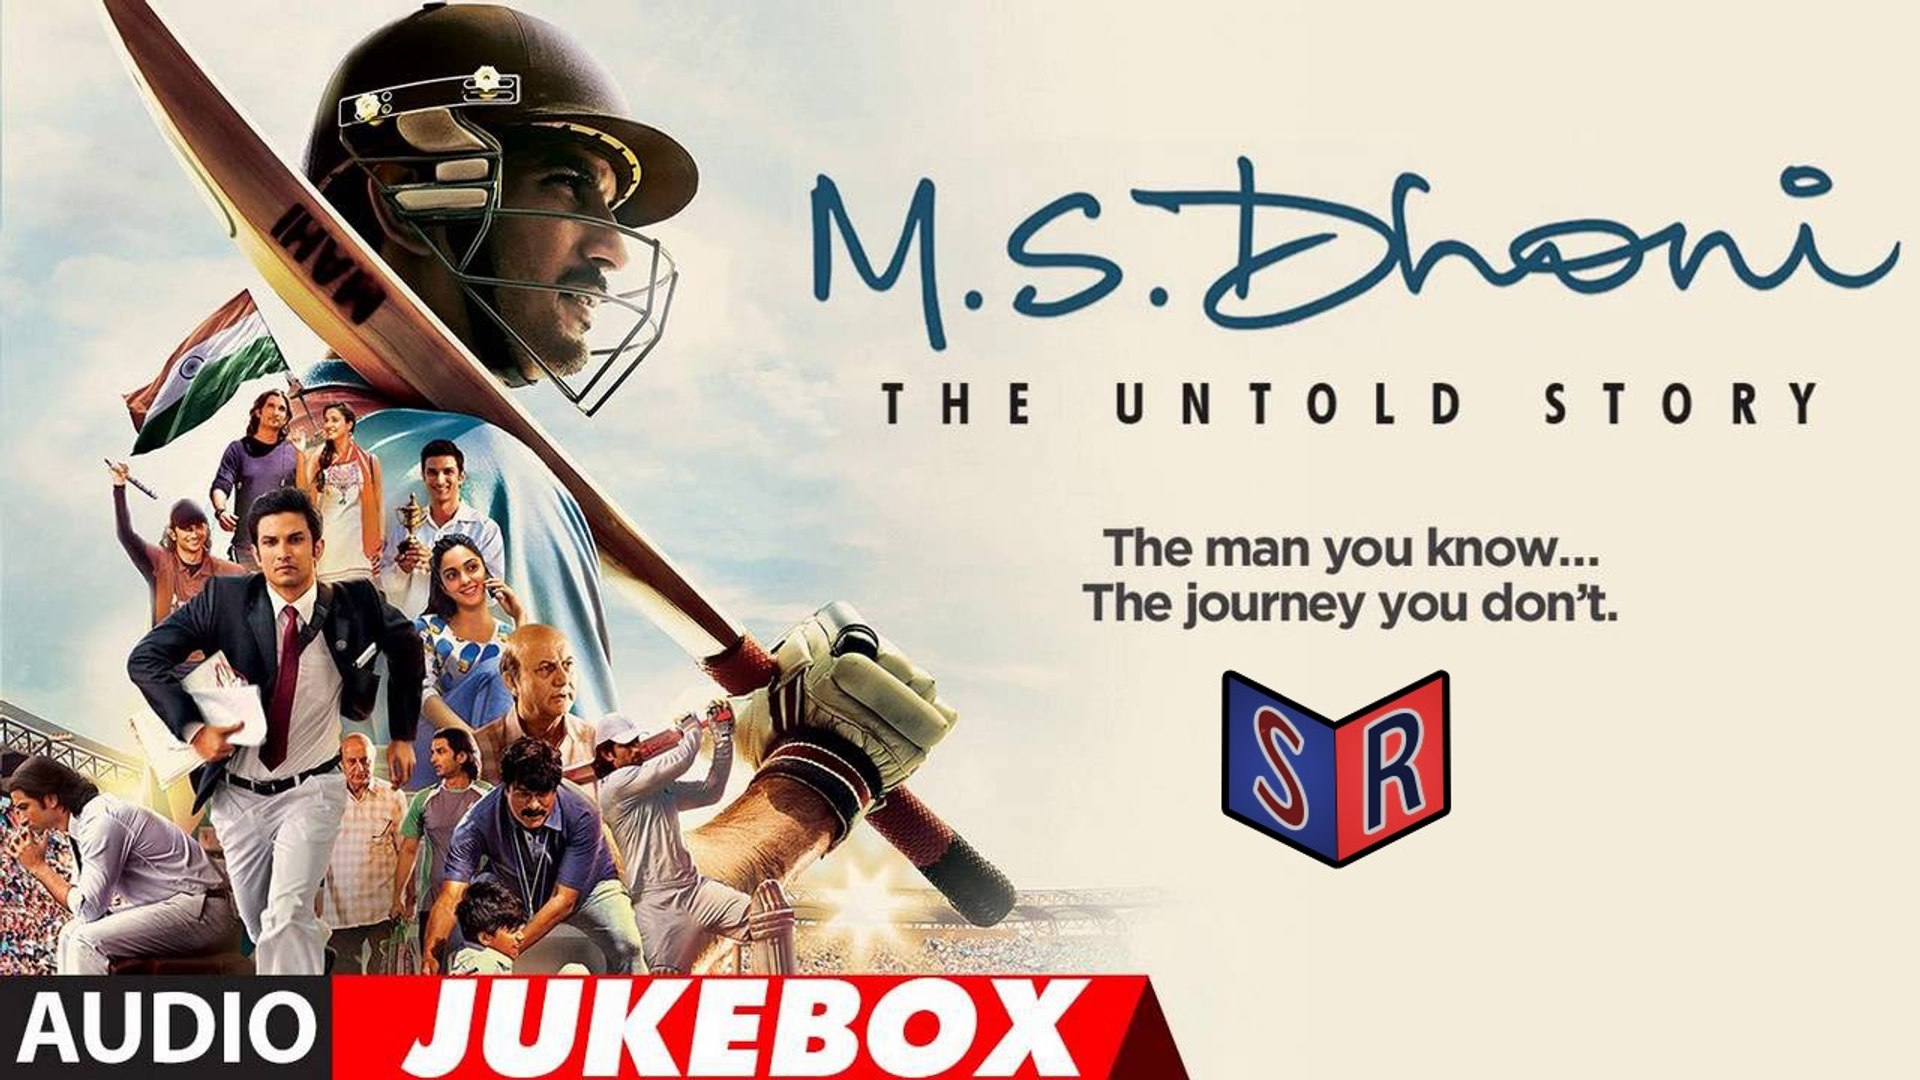 Full Audio Songs [Jukebox] - M.S Dhoni: The Untold Story [2016] FT. Sushant Singh Rajput [FULL HD] -